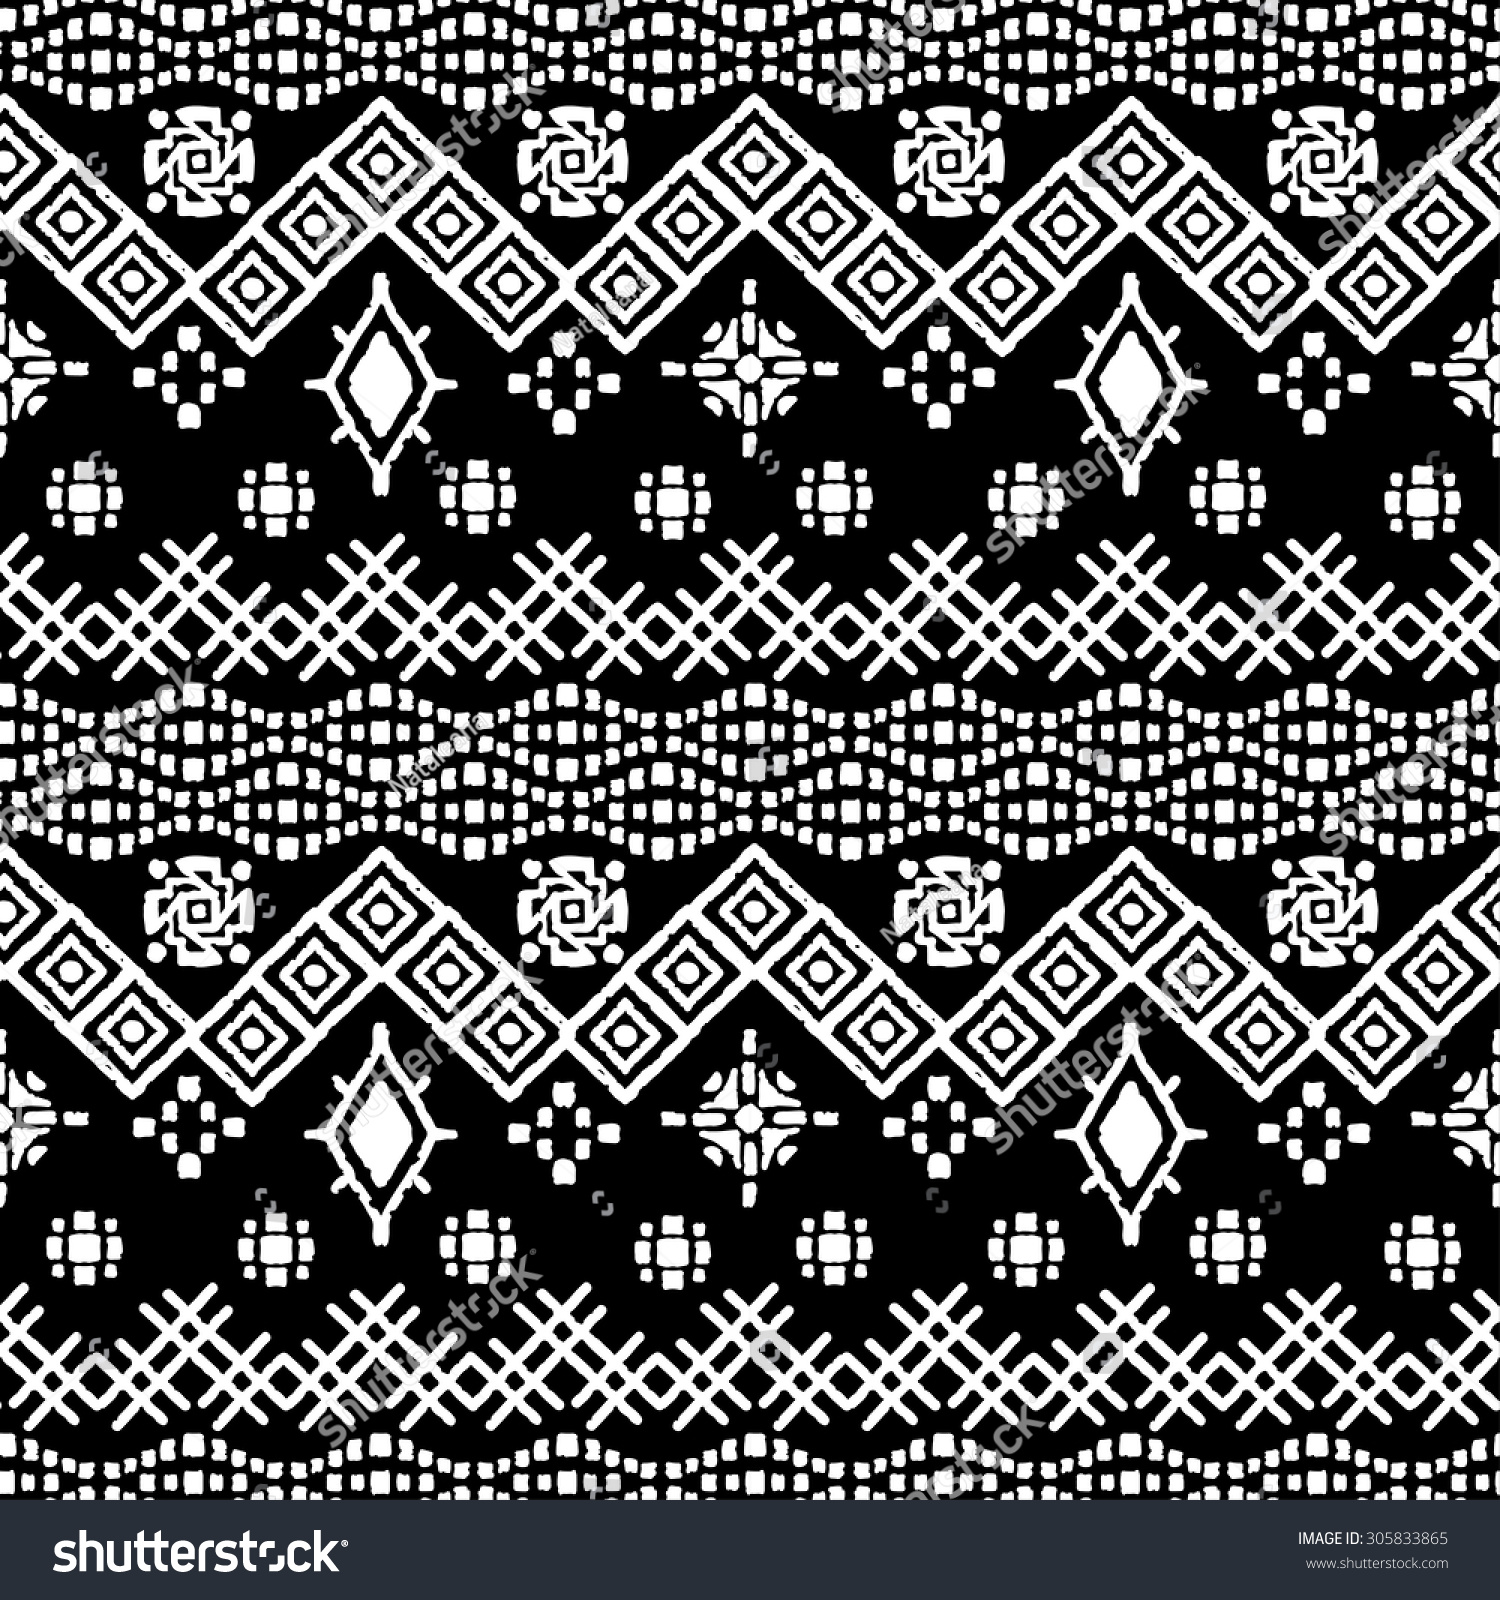 Tribal Art Boho Seamless Pattern Ethnic Geometric Print Repeating Border Background Texture In Black And White Fabric Cloth Design Wallpaper